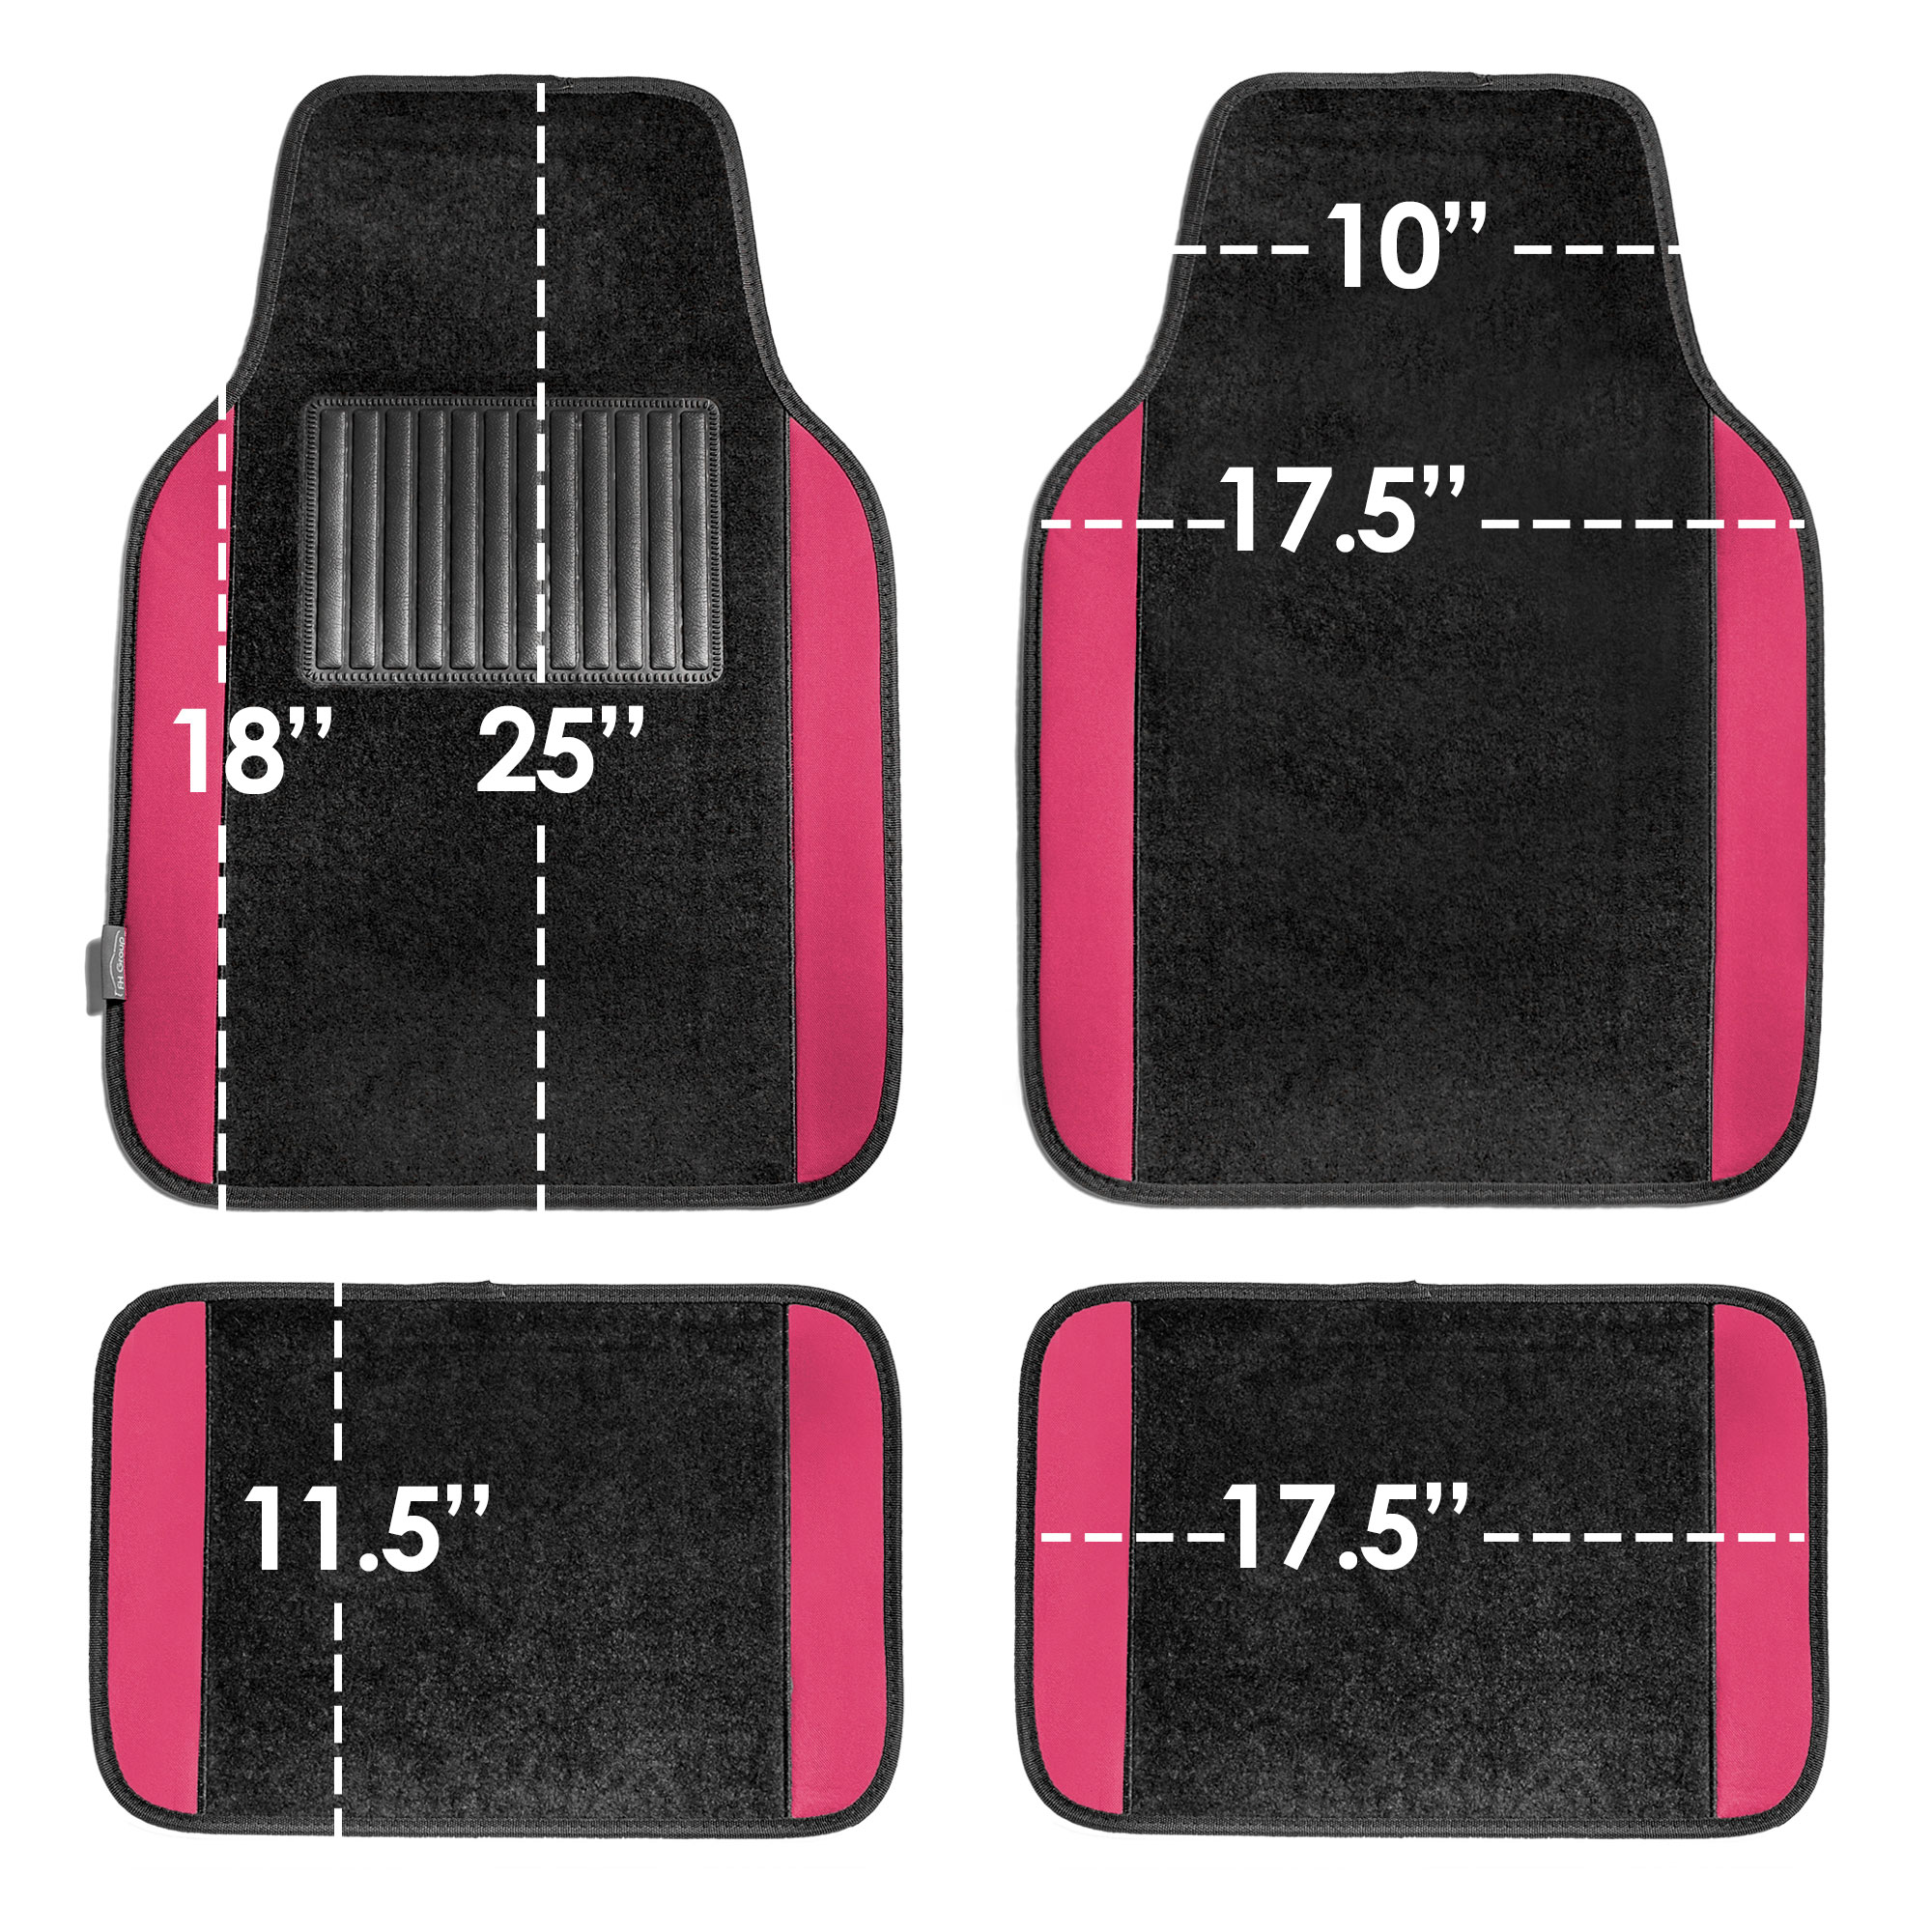 4pcs-Universal-Carpet-Floor-Mats-for-Car-SUV-Van-10-Color-Options-Full-Set thumbnail 46